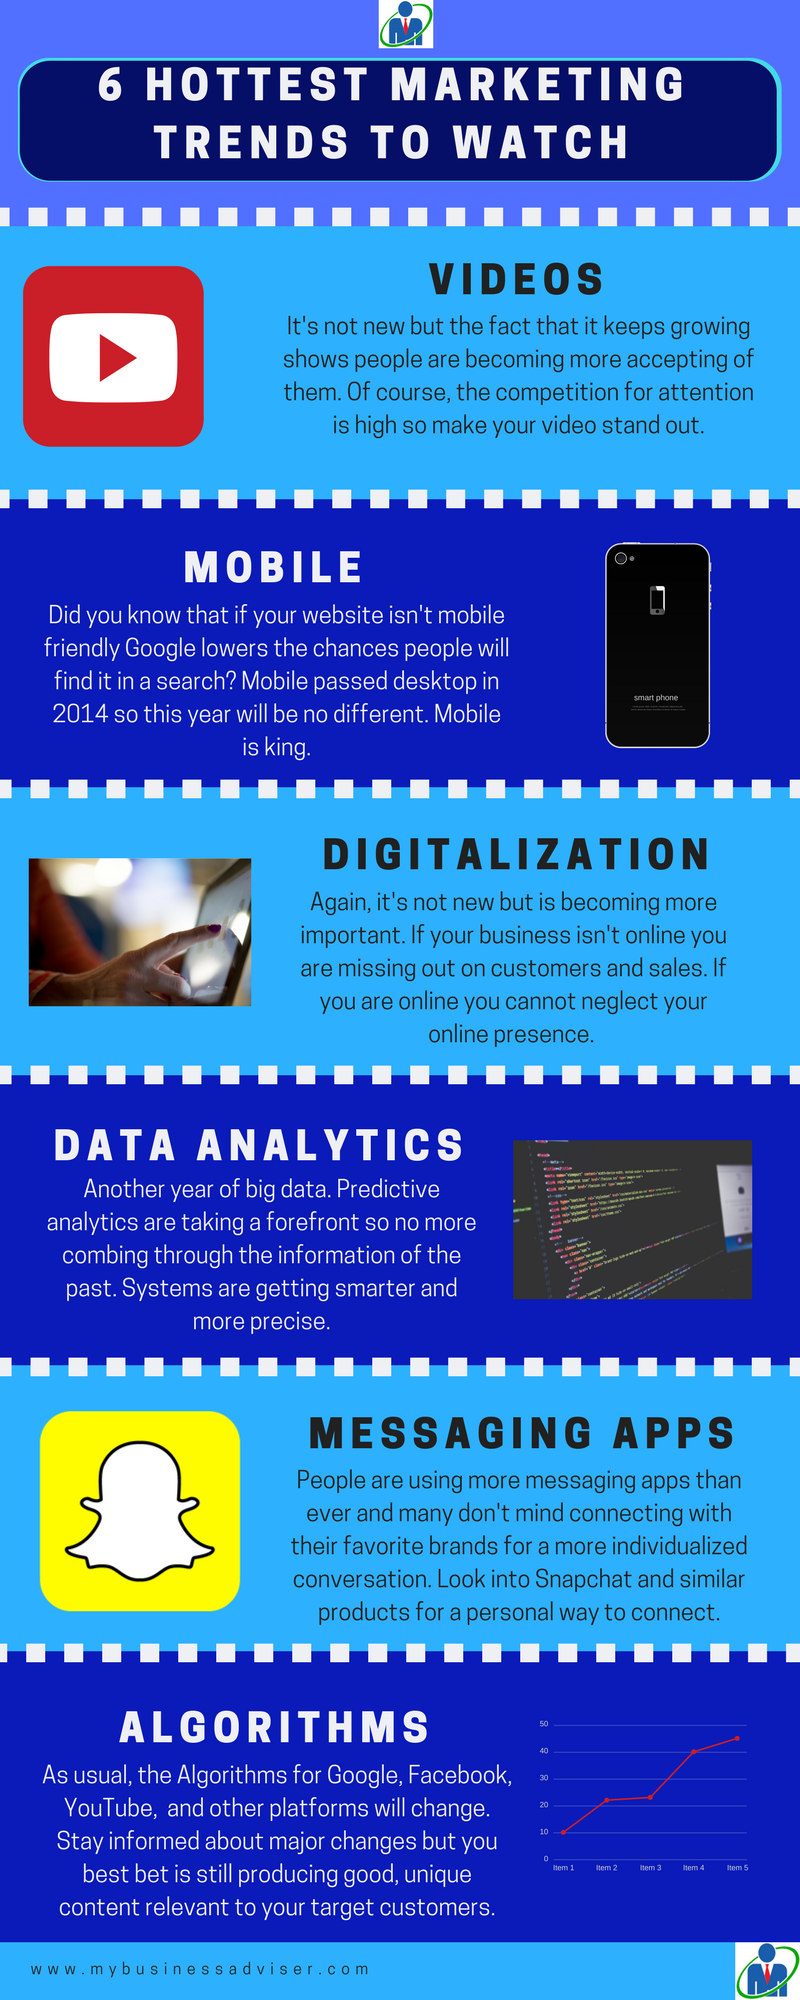 Marketing - 6 Hottest Marketing Trends to watch.png